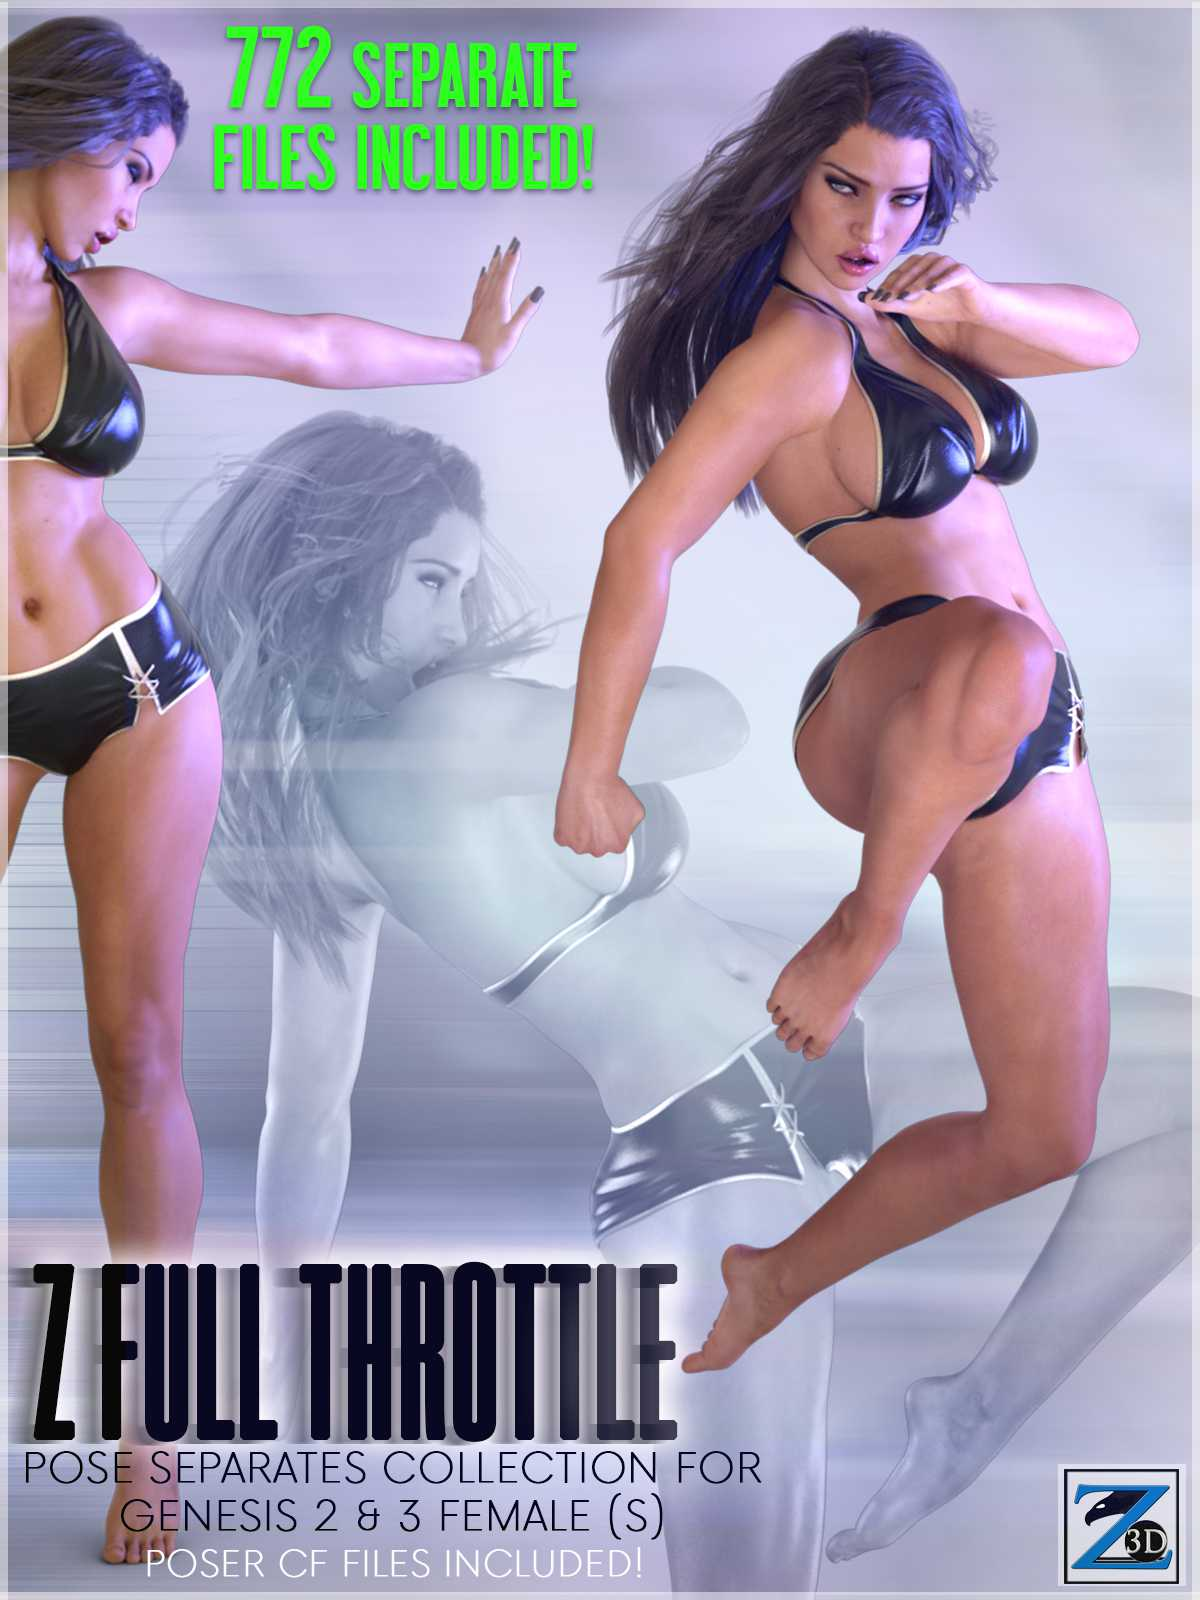 Z Full Throttle – Pose Separates Collection for Genesis 2 & 3 Female(s)